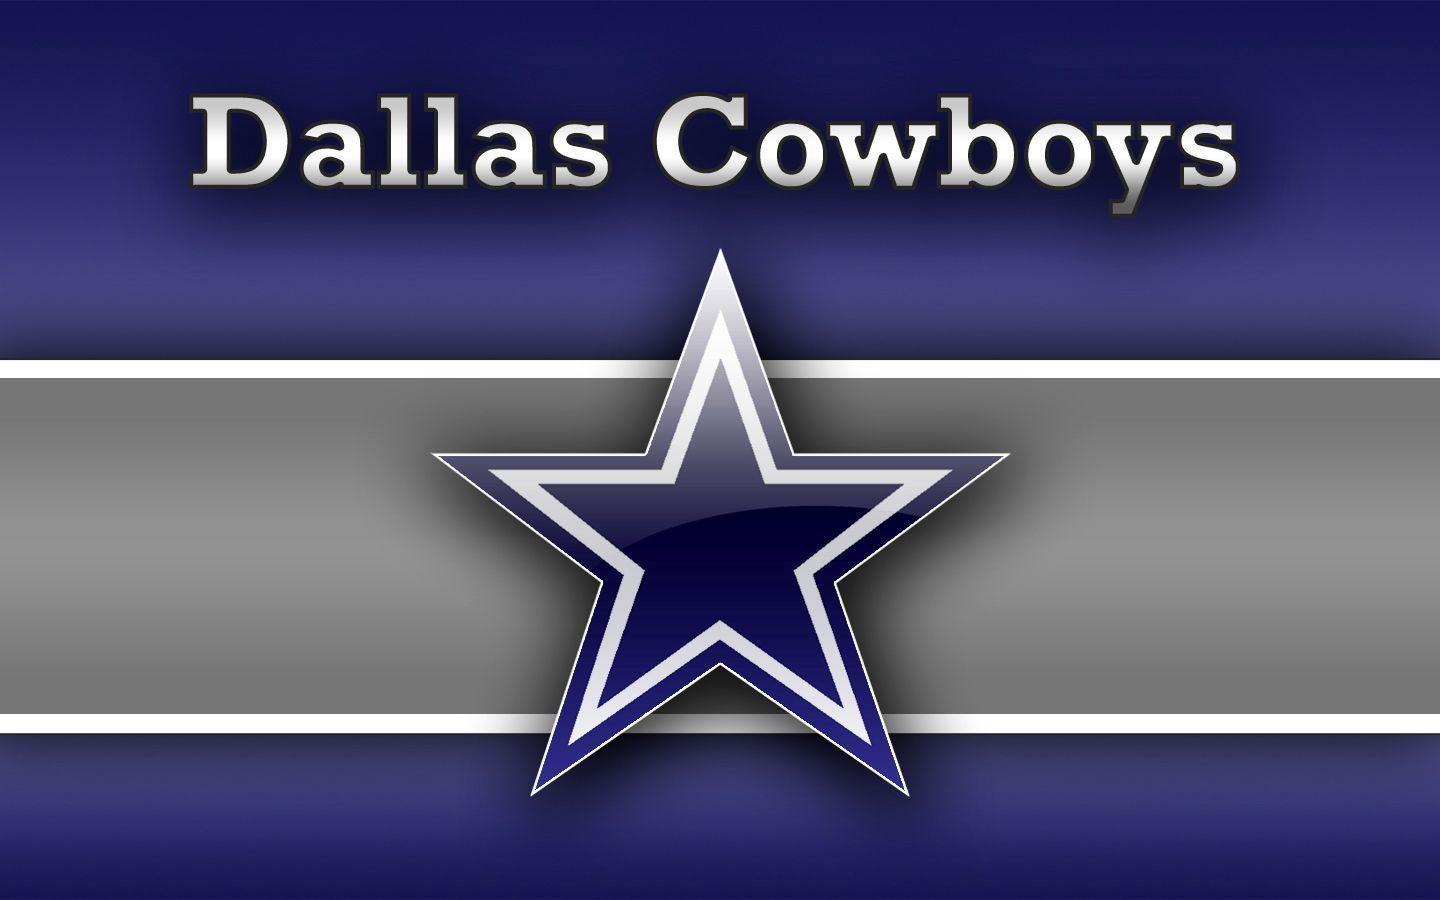 Free cowboys wallpapers wallpaper cave free dallas cowboys wallpaper for computers 35468 wallpaper download voltagebd Gallery